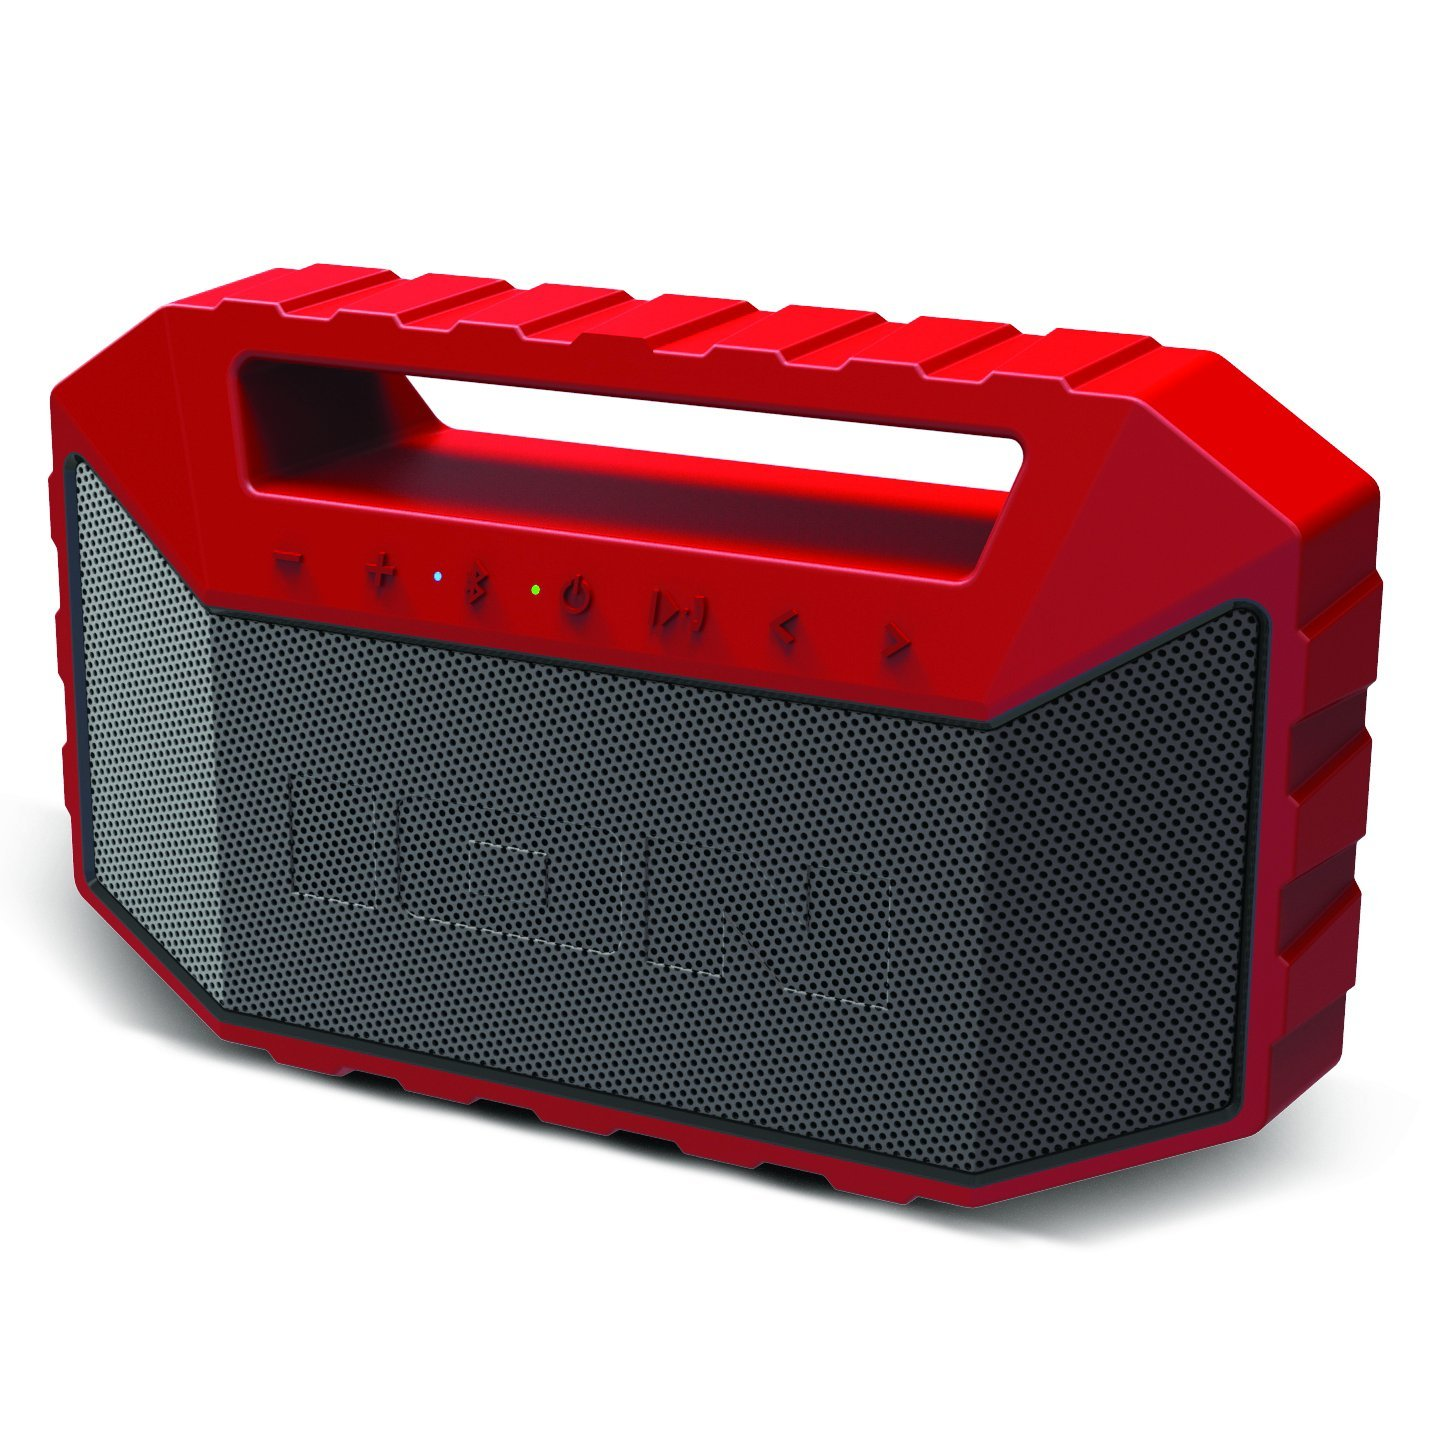 ION Plunge Red IPX7 Waterproof Stereo Boombox + 20W + 20 ώρες αυτονομία + Hands-Free